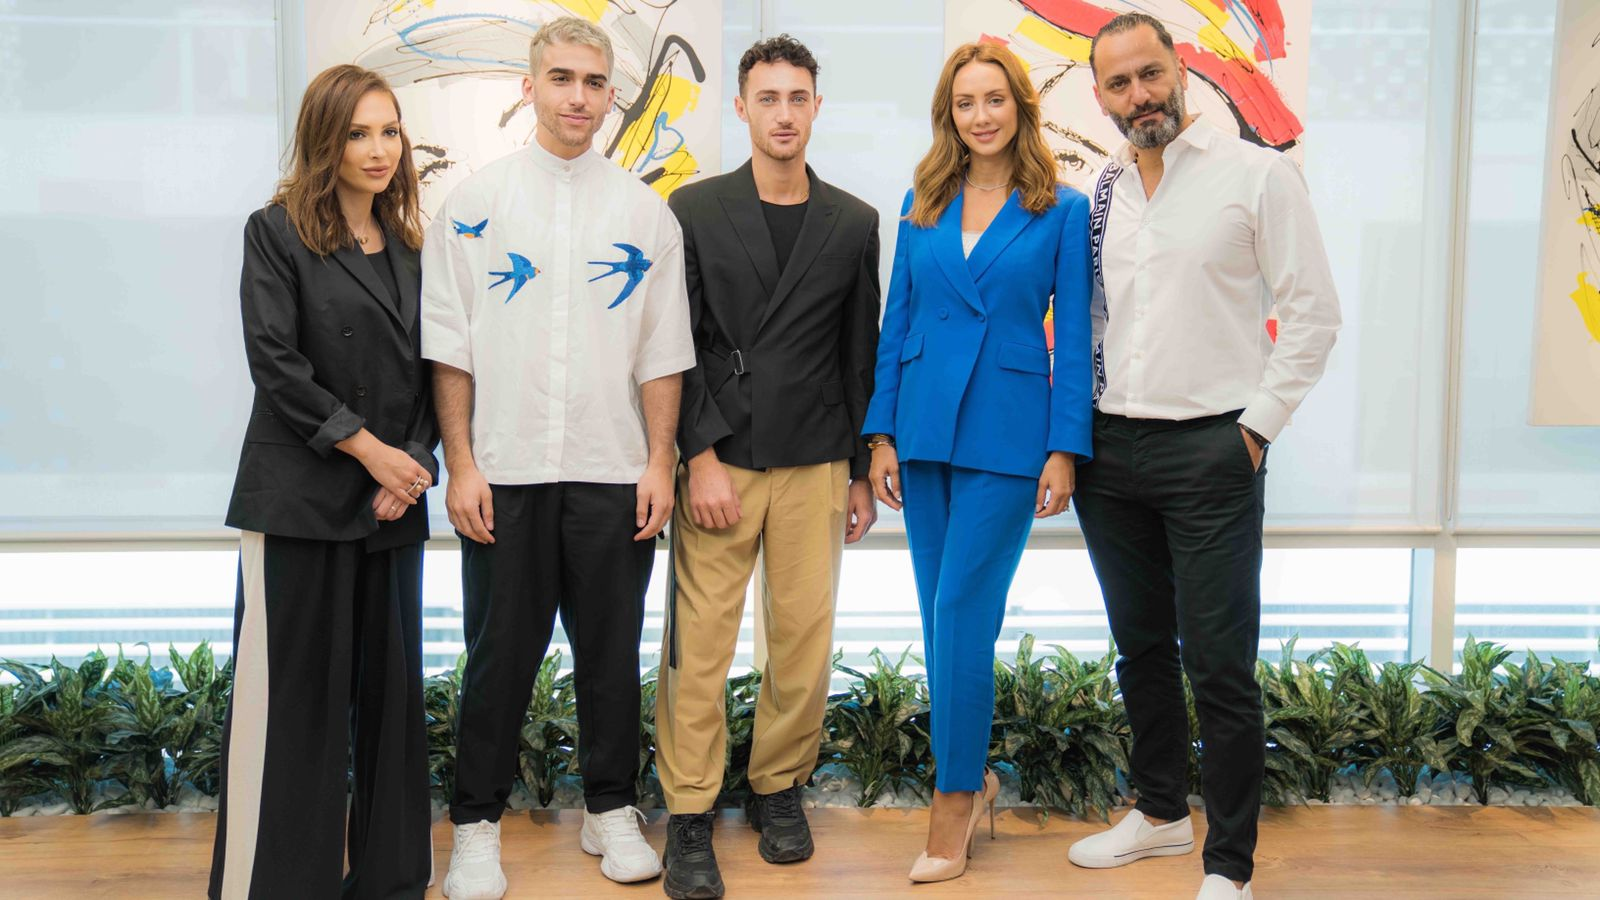 Arab Fashion Council and HuManagement signed a partnership agreement to co-organise the Arab Fashion Week and Fashion Icon Awards